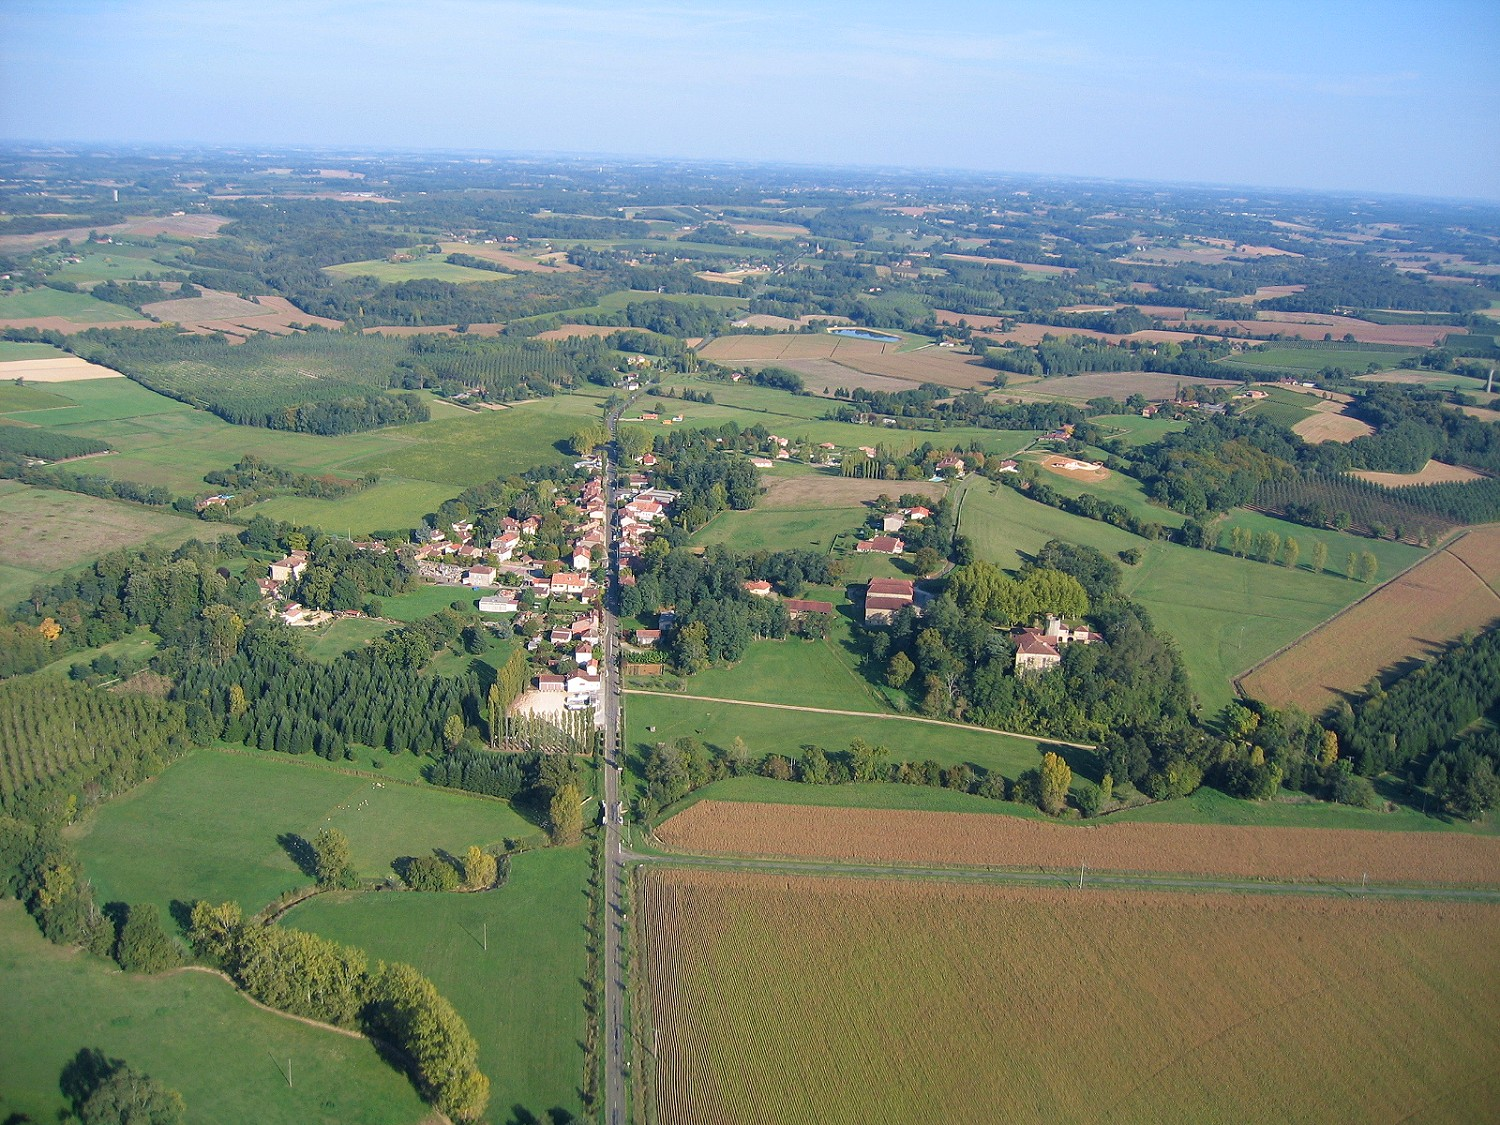 Photo aerienne en grand format de Campagne d'Armagnac